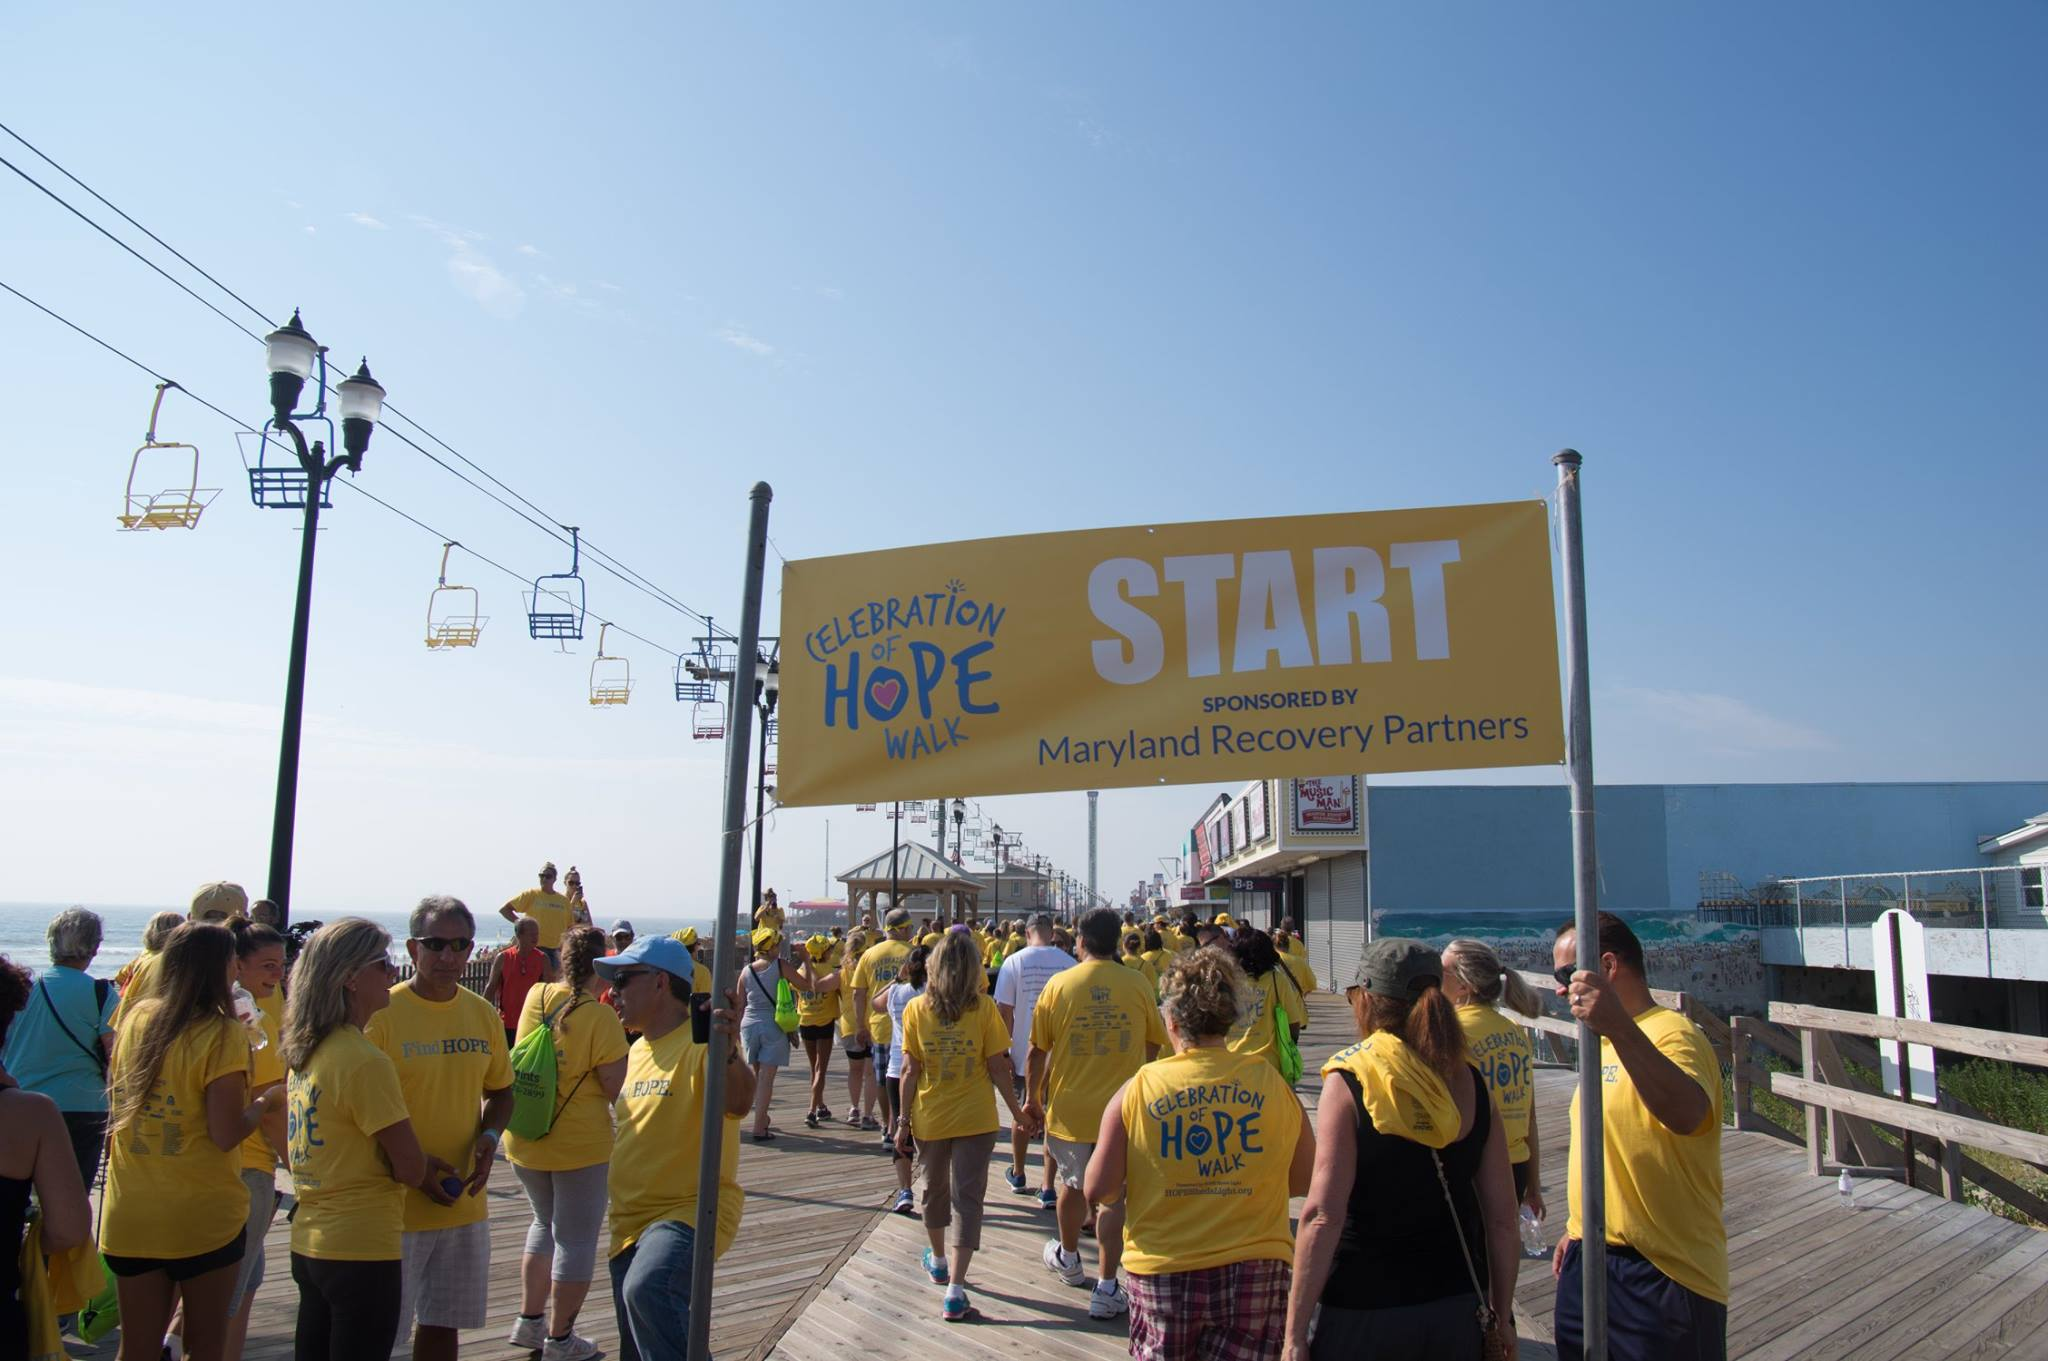 The HOPE Sheds Light Walk in Seaside Heights. (File Photo)